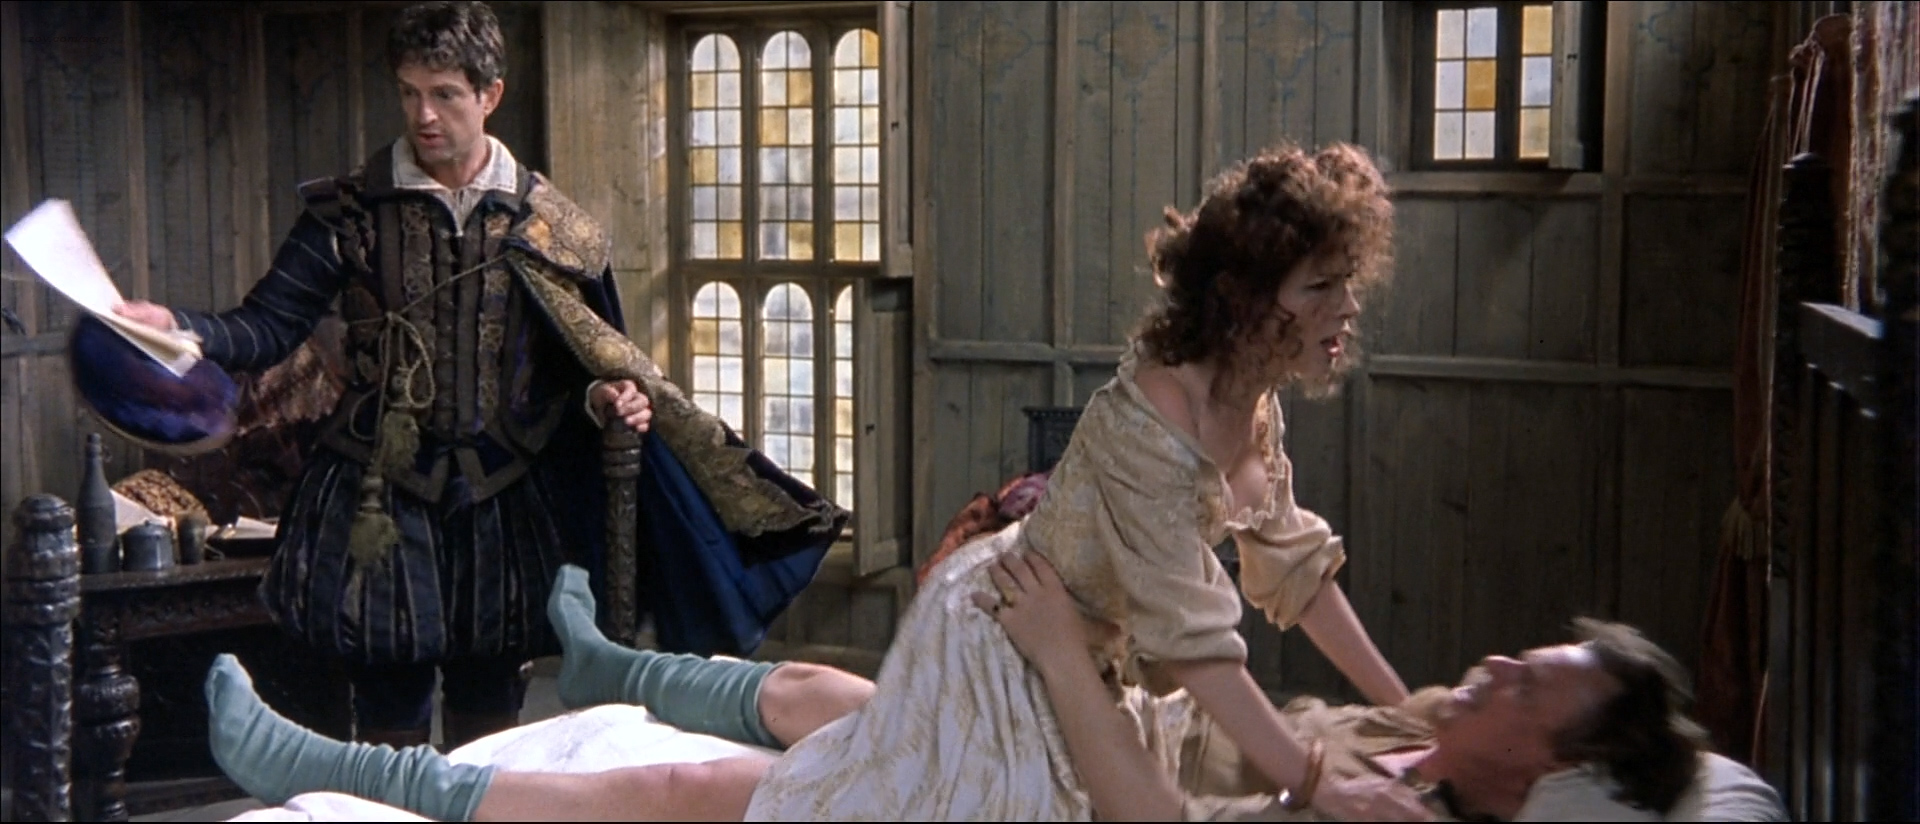 Pdf Shakespeare's Othello And Freud's Most Prevalent Form Of Degradation In Erotic Life